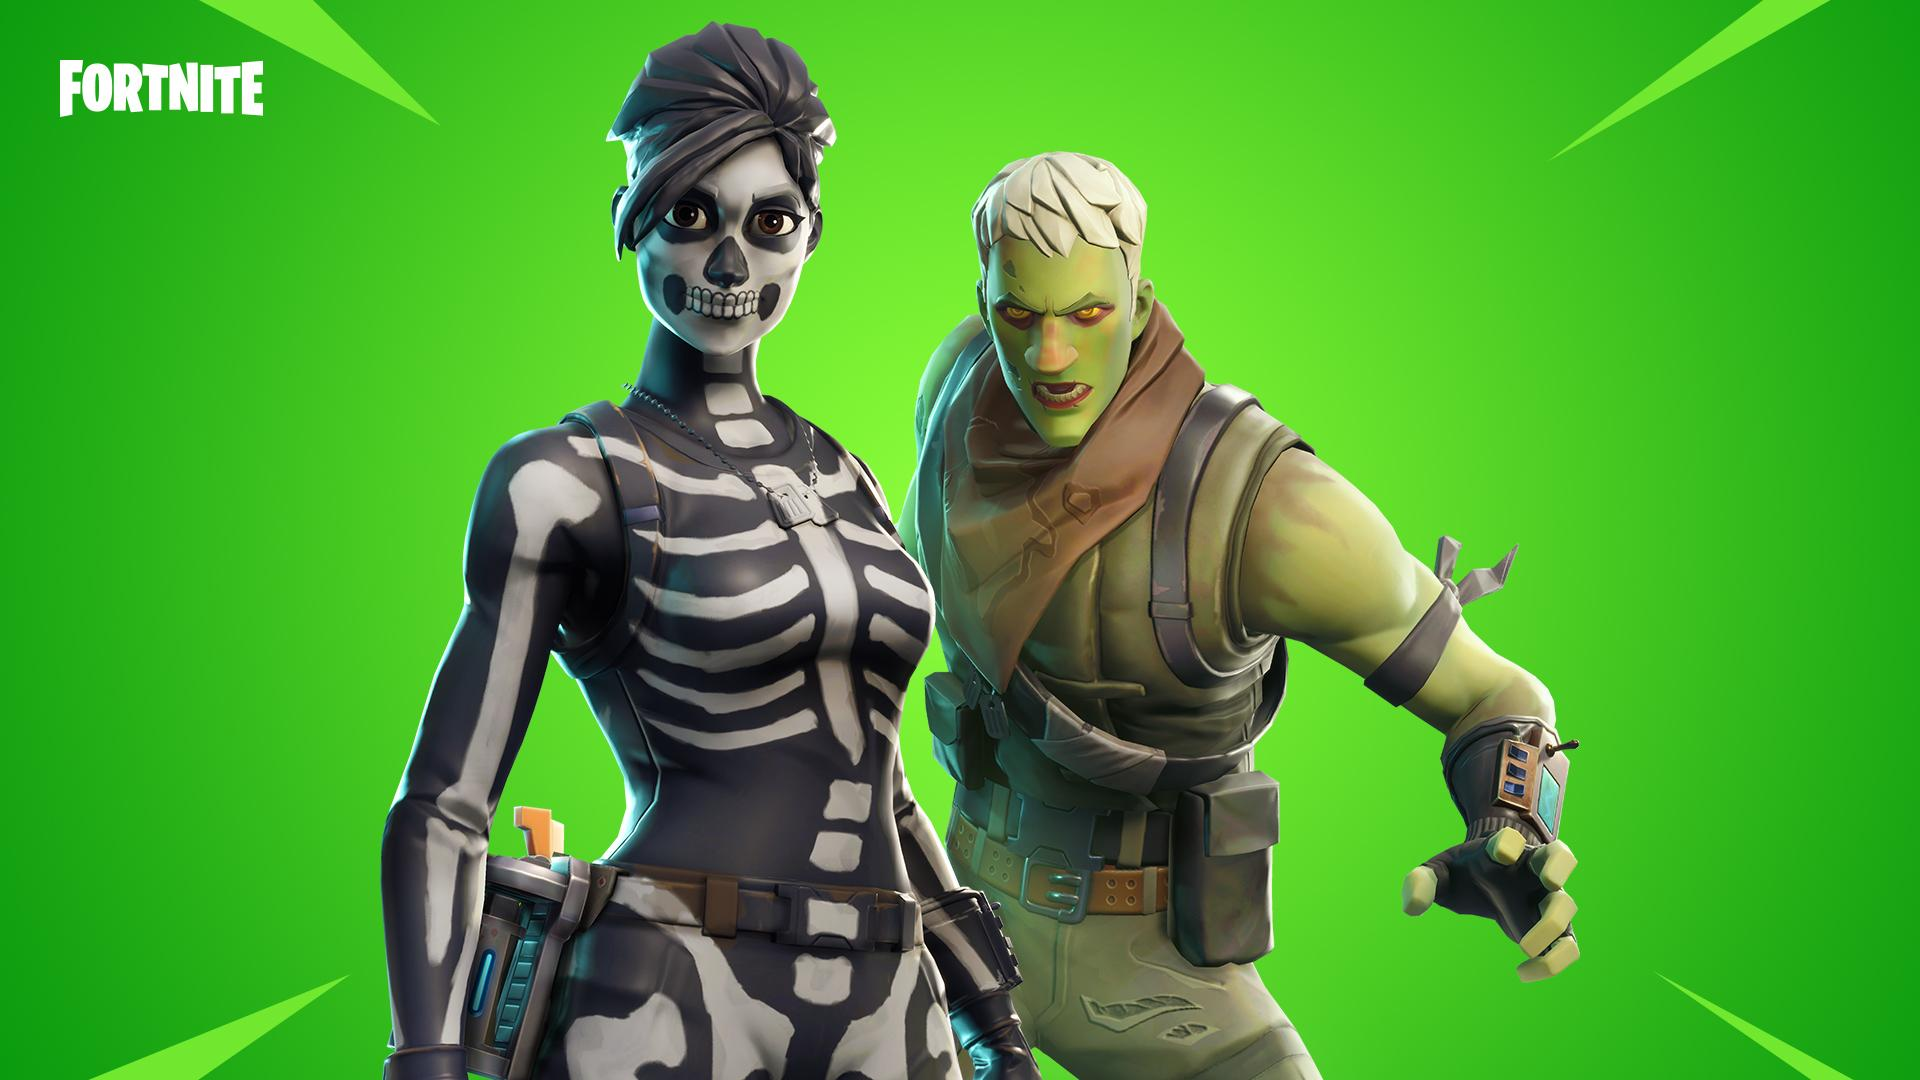 Fortnite save the world free to play debut pushed into - Fortnite save the world wallpaper ...